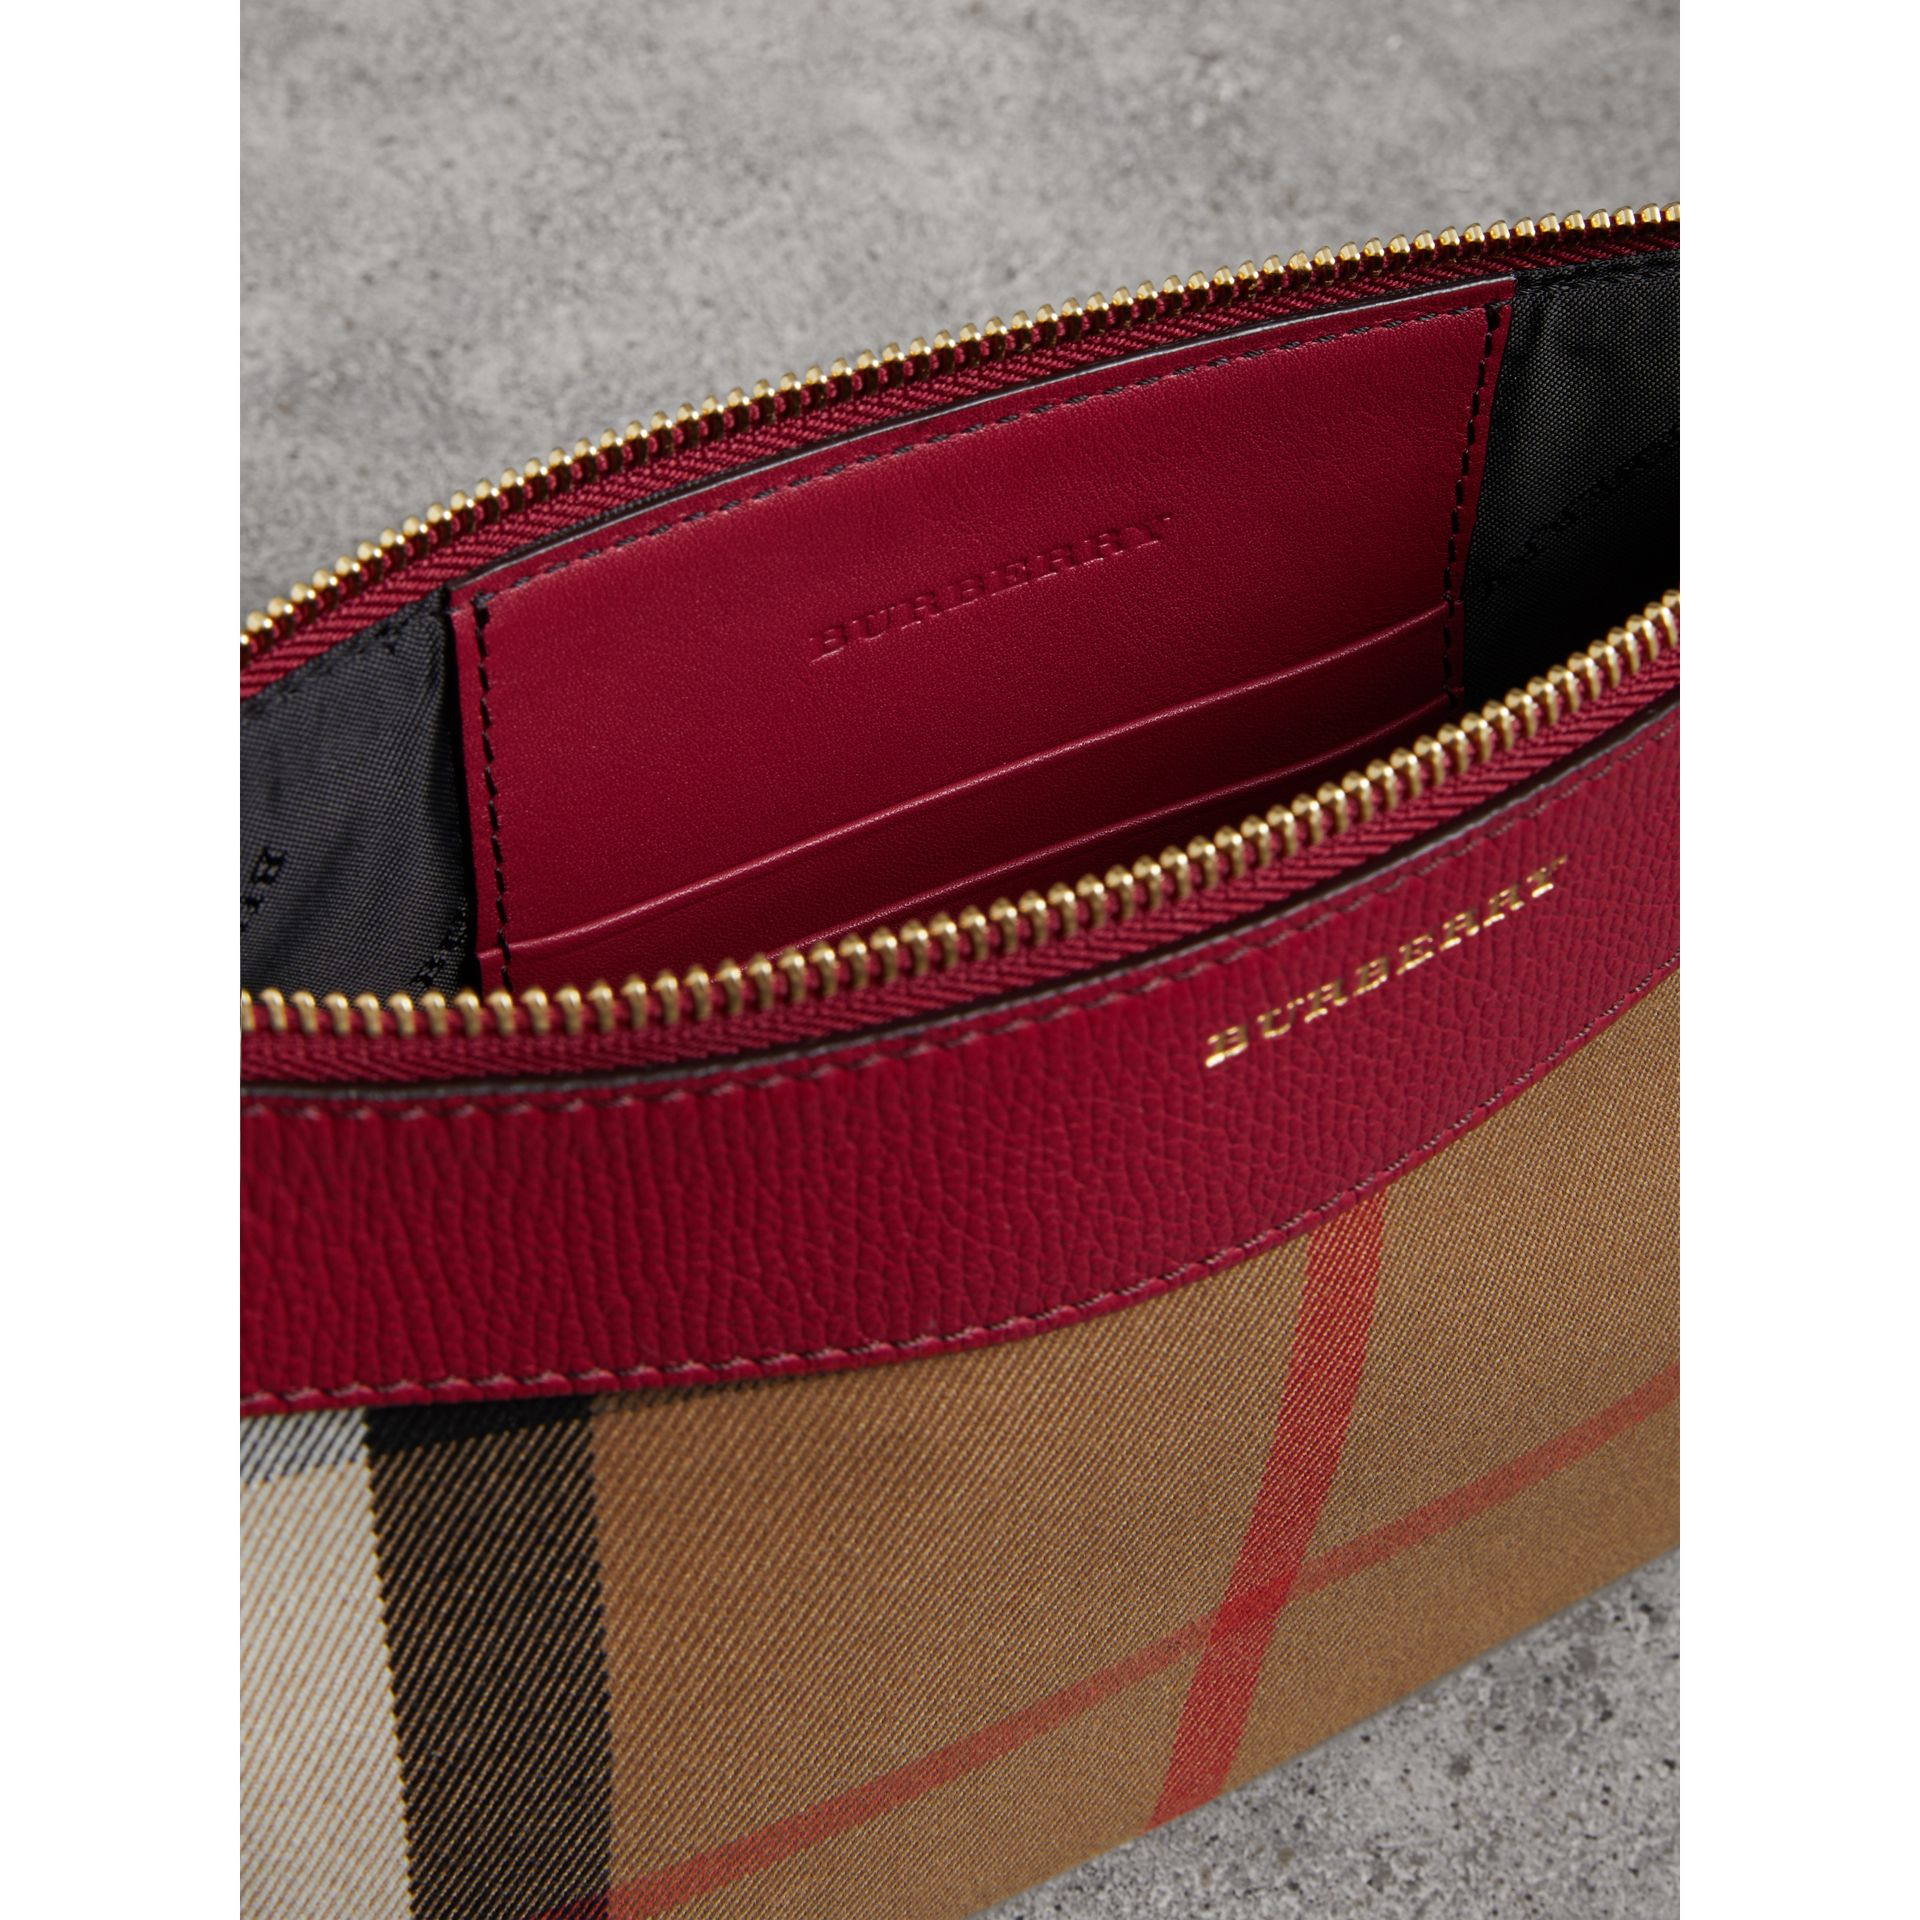 House Check and Leather Clutch Bag in Military Red - Women | Burberry - gallery image 4